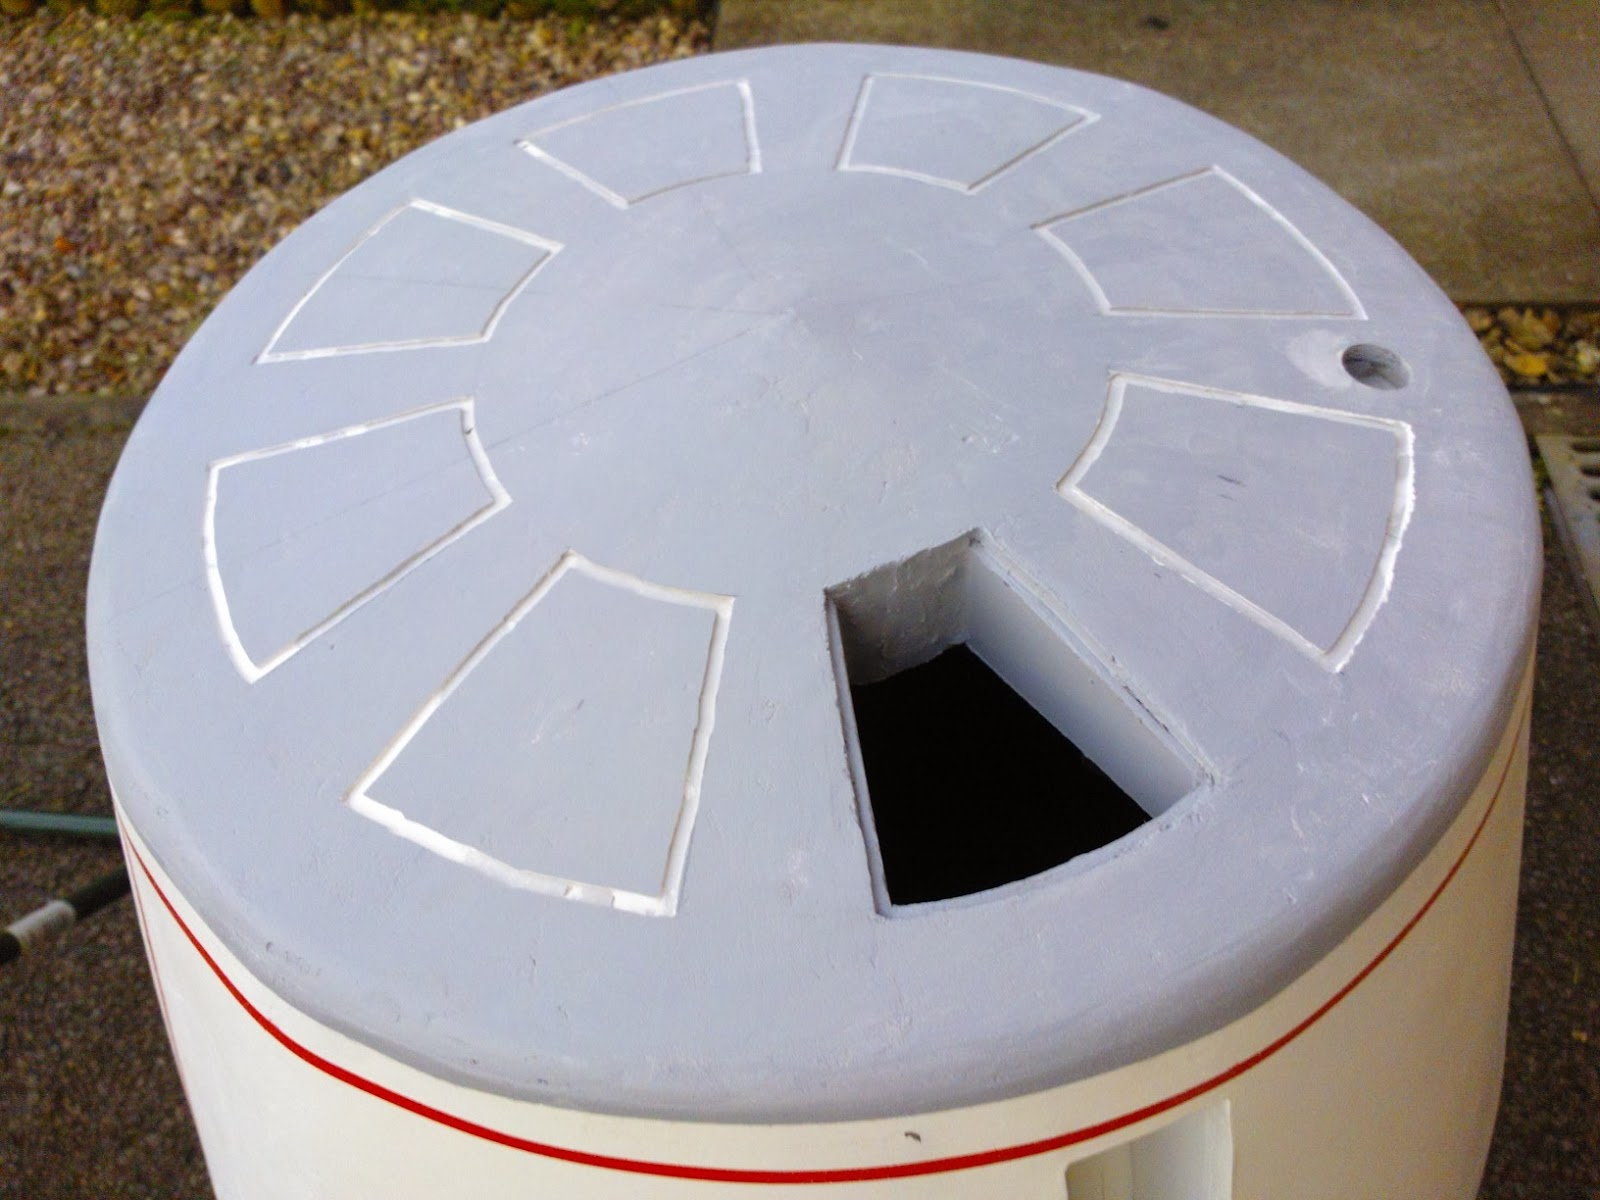 R5-D4 Dome pie panels